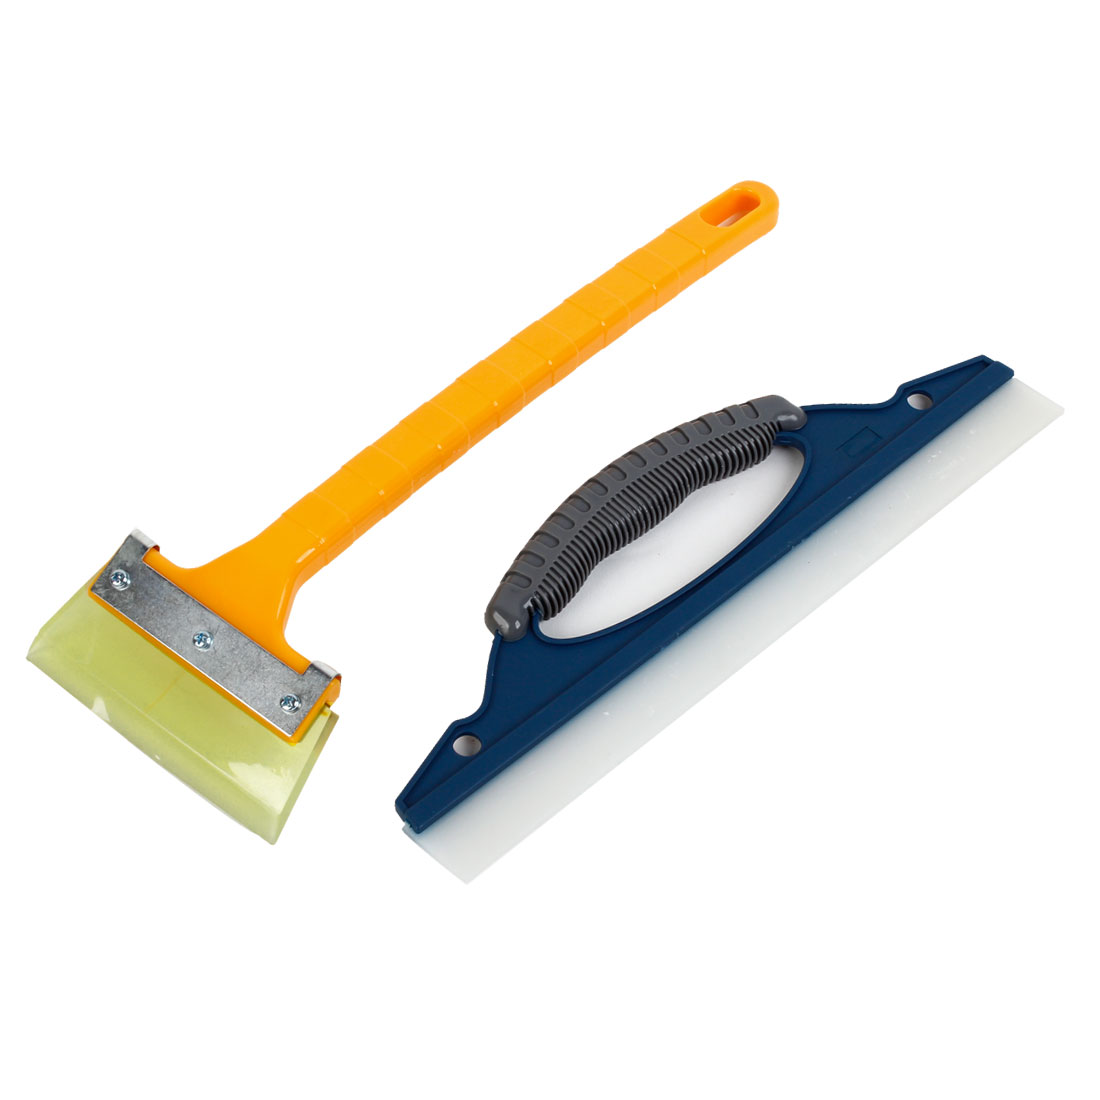 2 in 1 Antislip Plastic Handle Scraper Squeegee Cleaner for Car Auto